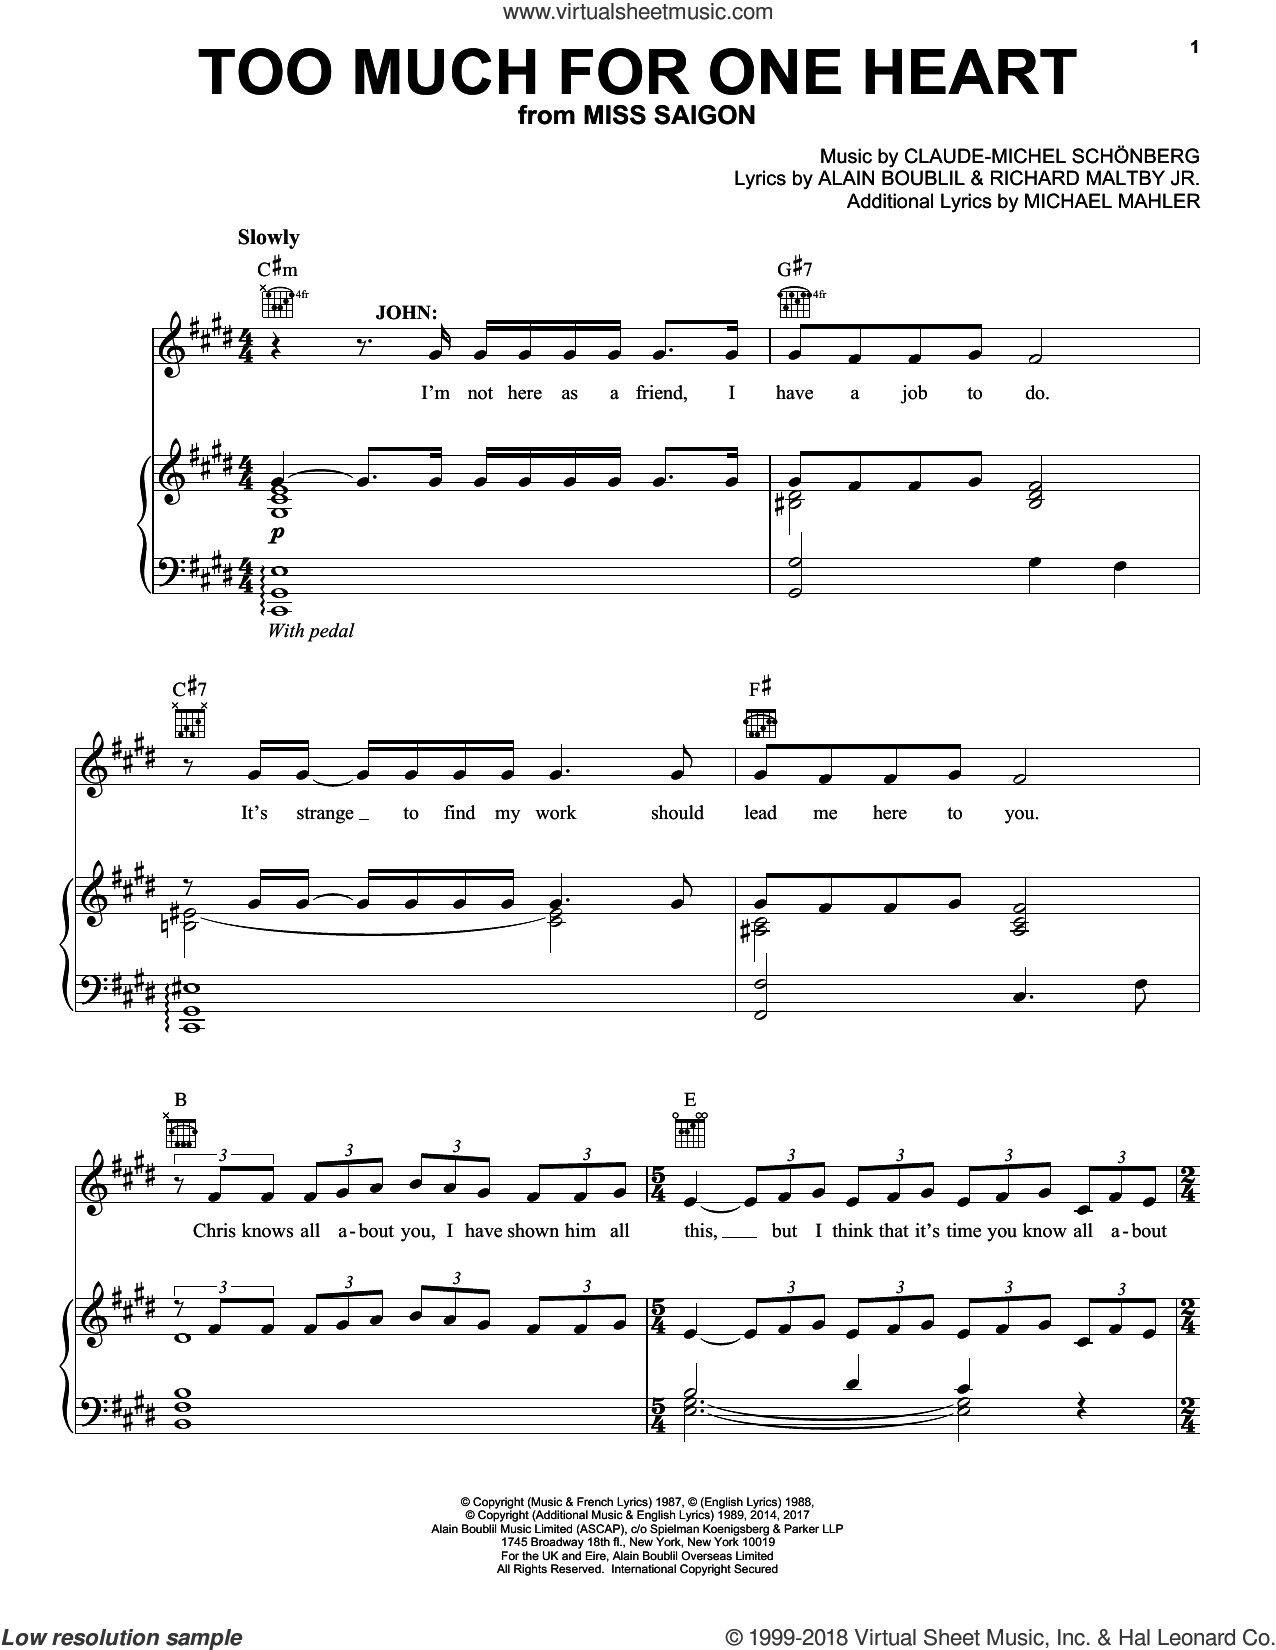 Too Much For One Heart sheet music for voice, piano or guitar by Claude-Michel Schonberg, Alain Boublil, Claude-Michel Schonberg, Michael Mahler and Richard Maltby, Jr., intermediate skill level